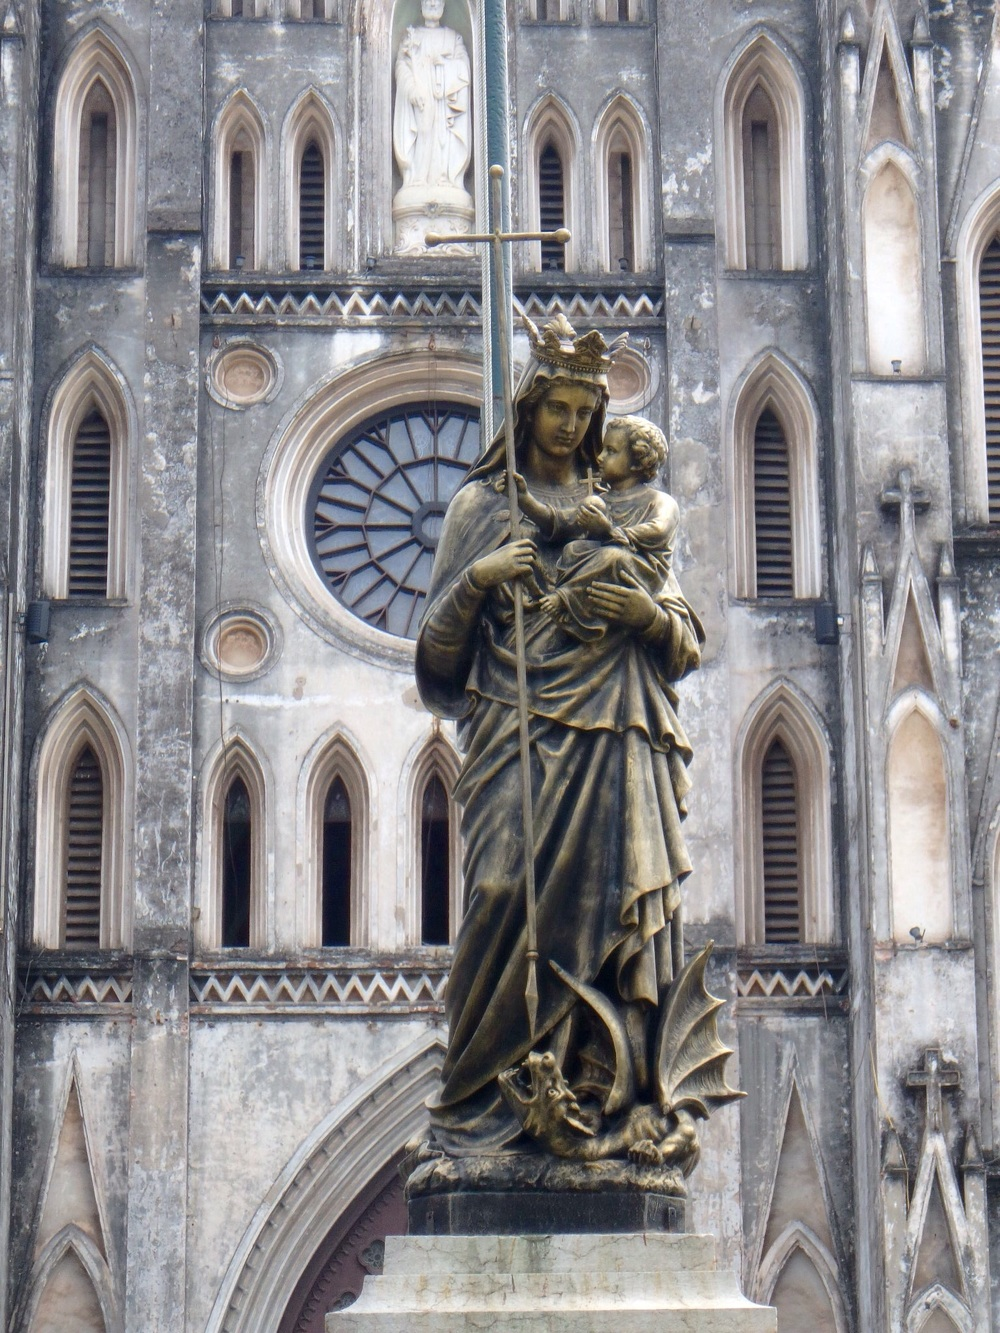 The Virgin Mary and Jesus statue outside the Notre Dame Cathedral look alike in Ho Chi Minh City. It's beautiful but much smaller and less ornate than the Paris original.